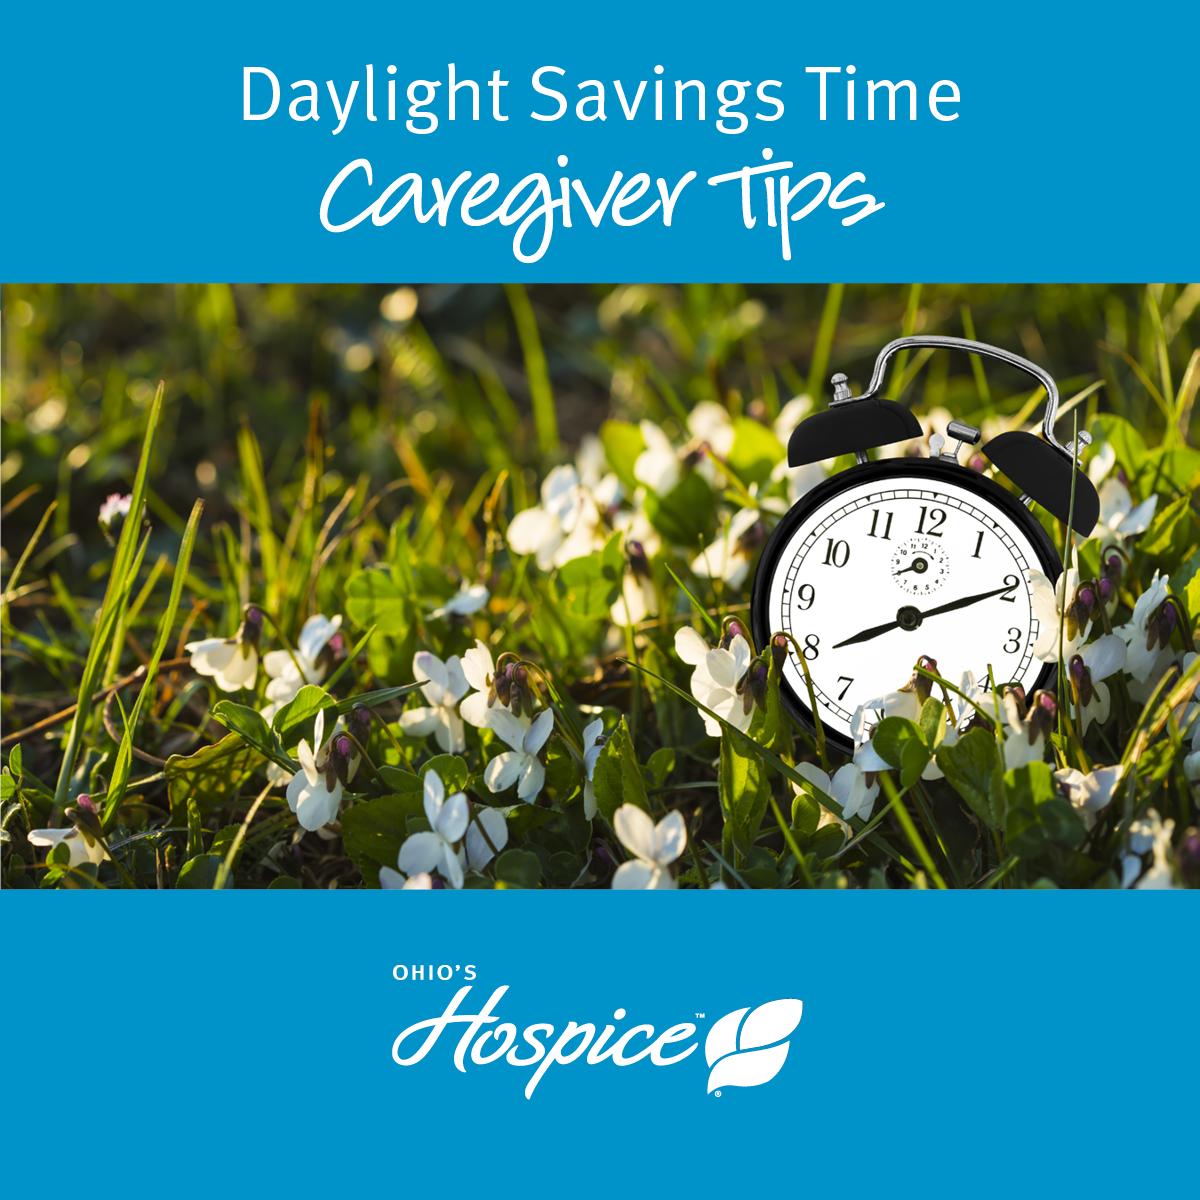 Ohio's Hospice Daylight Savings Time